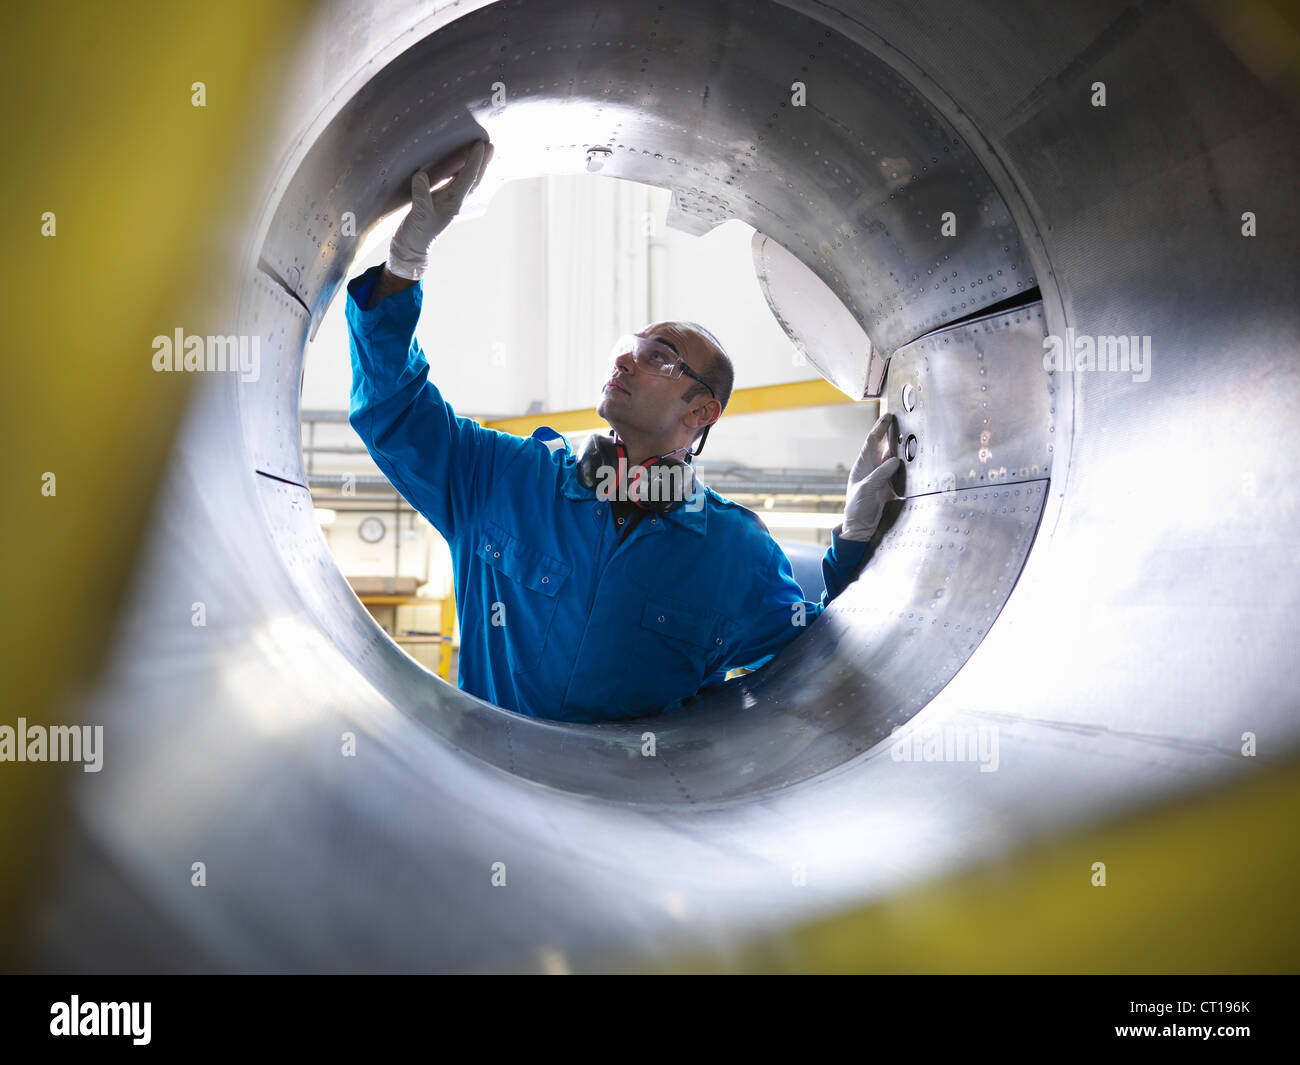 Workers examining airplane machinery - Stock Image